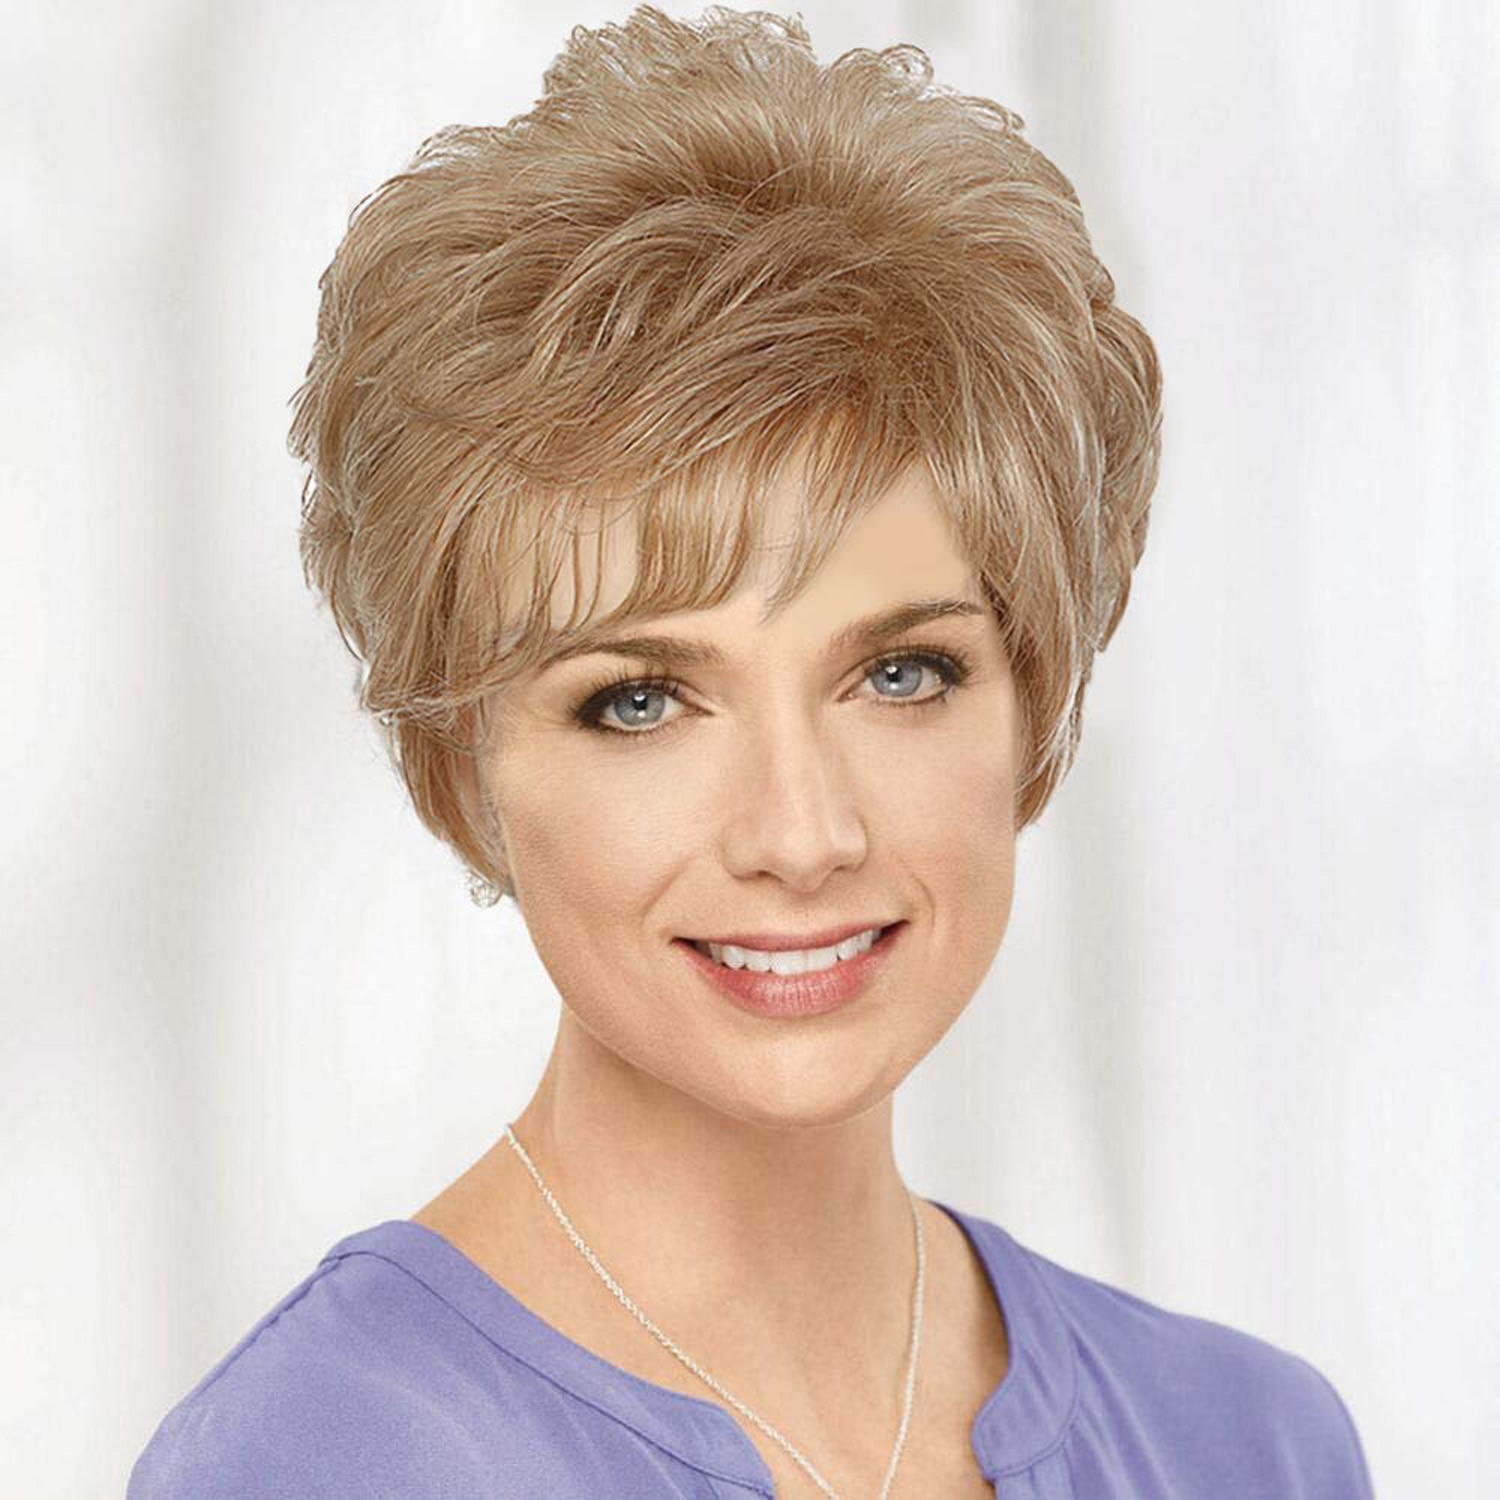 Synthetic Wigs for Women 2 Colour Short Curly Hair Natural Brown Wigs Daily Use High Temperature Fiber Wigs